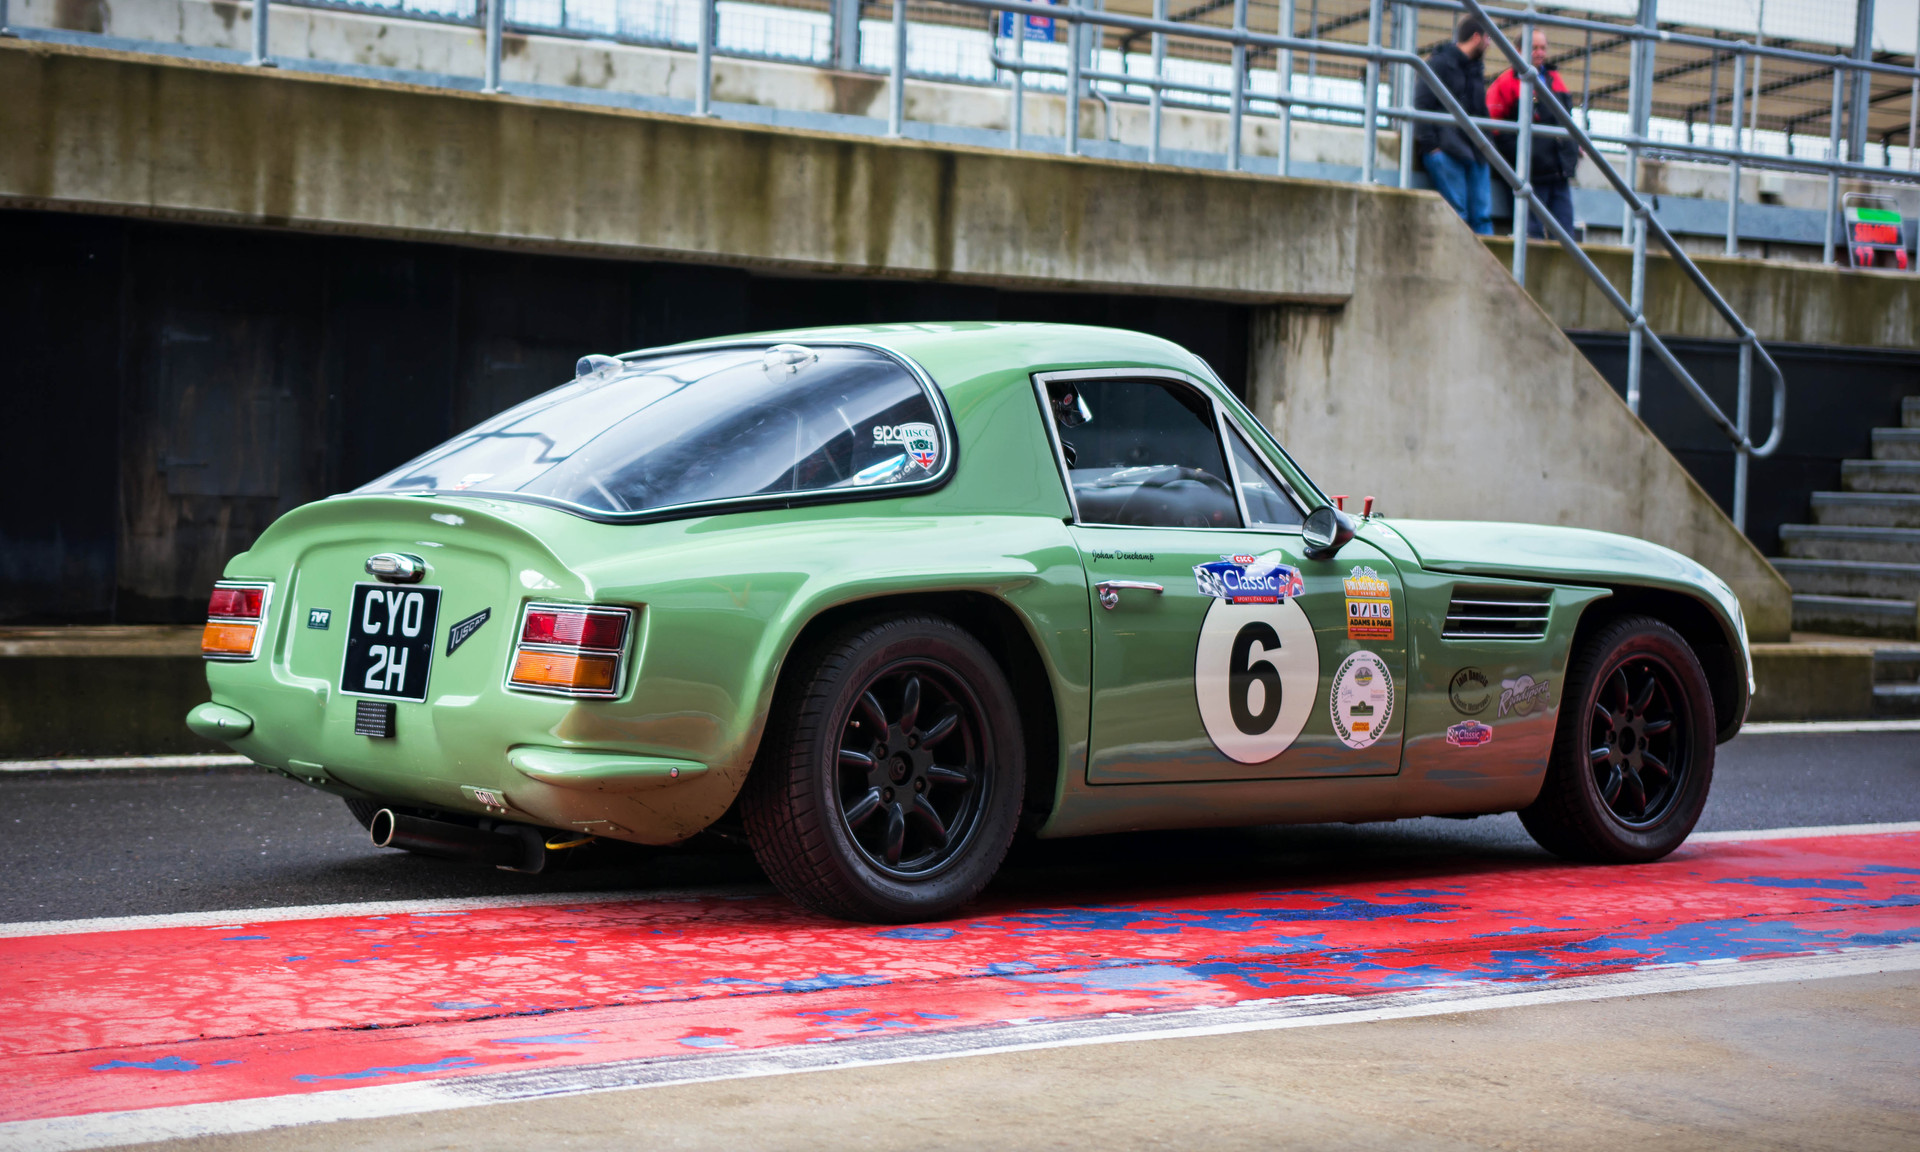 Johan Denekamp's 1969 TVR Tuscan at the 2018 Silverstone Classic Preview Day